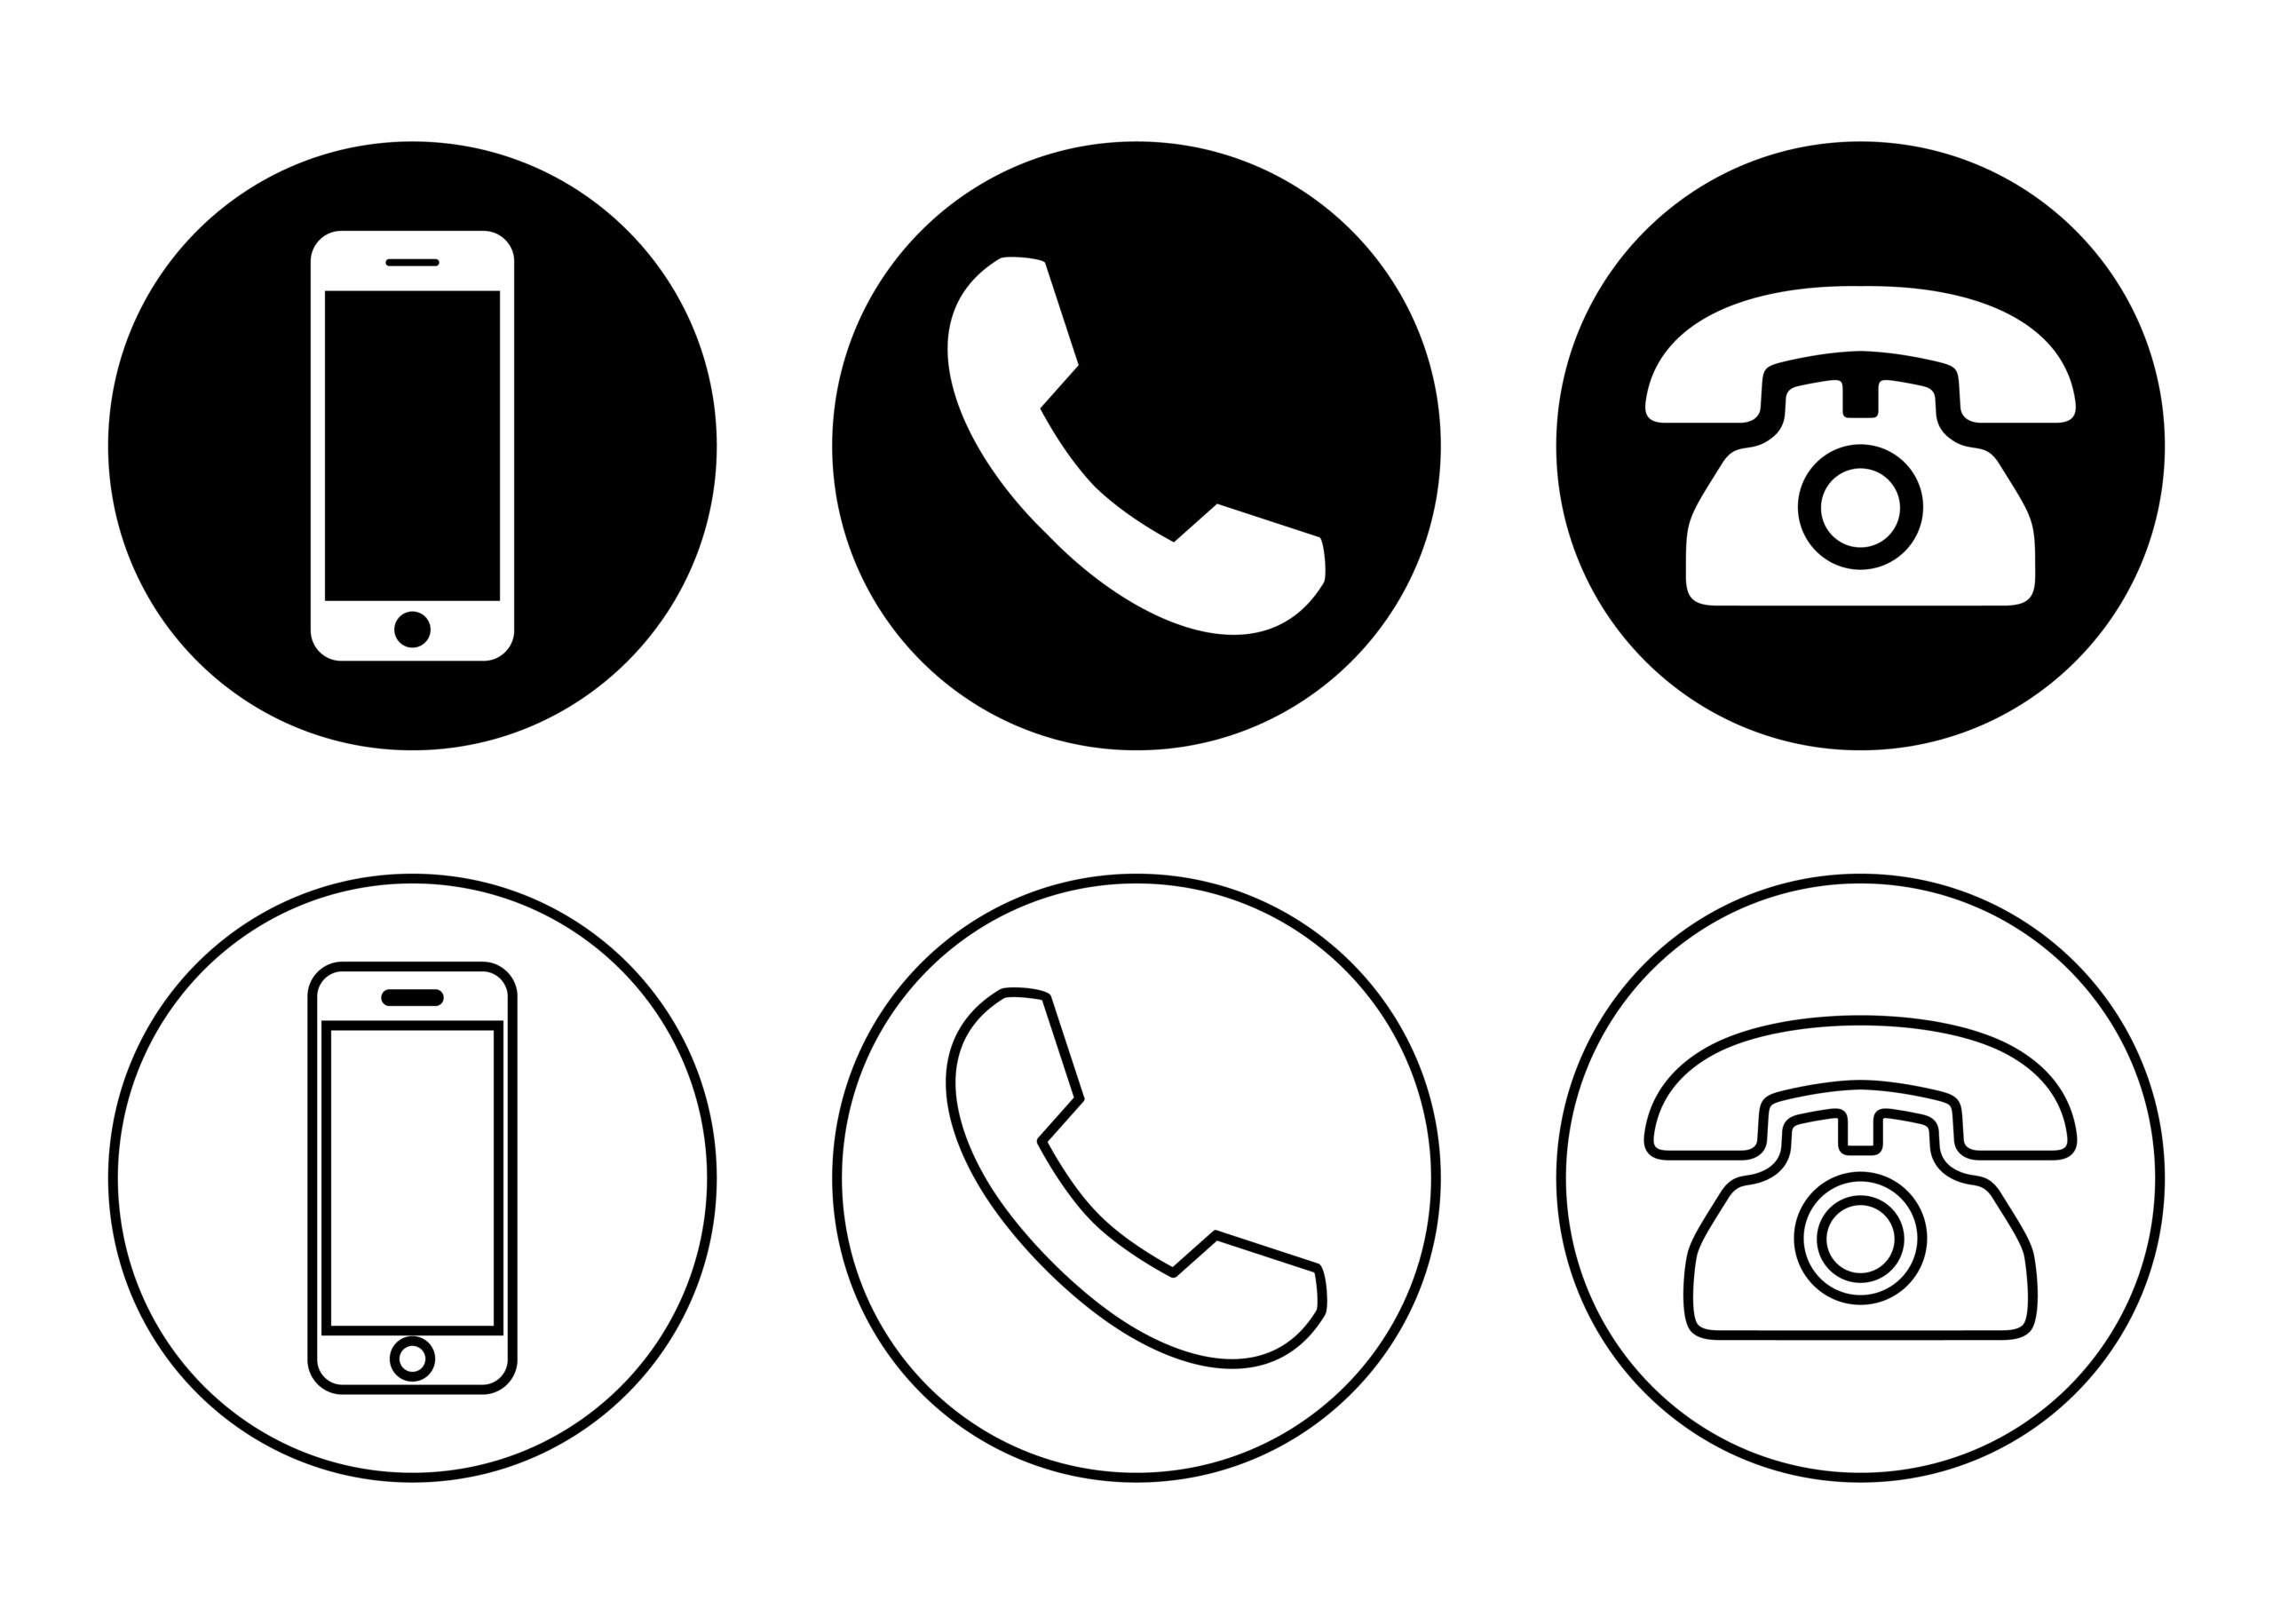 phone icon vector call smartphone device gadget telephone snapchat logo symbol for resume Resume Phone Symbol For Resume